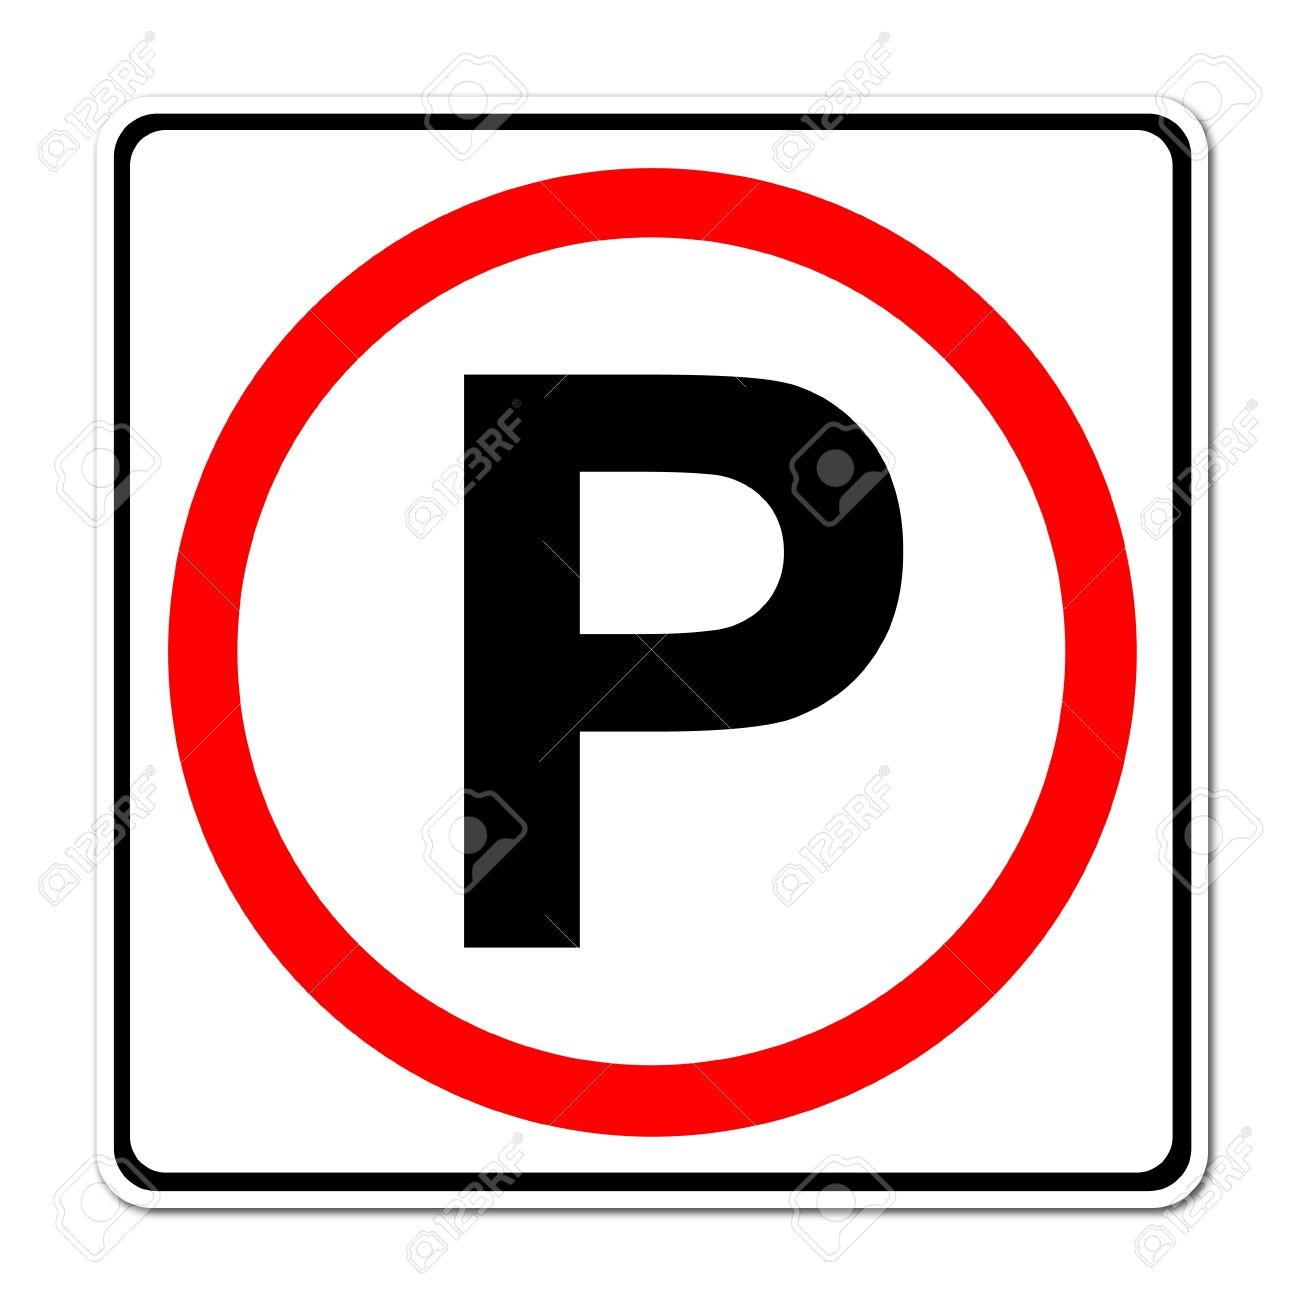 Parking Traffic Sign On White Background Stock Photo, Picture And.